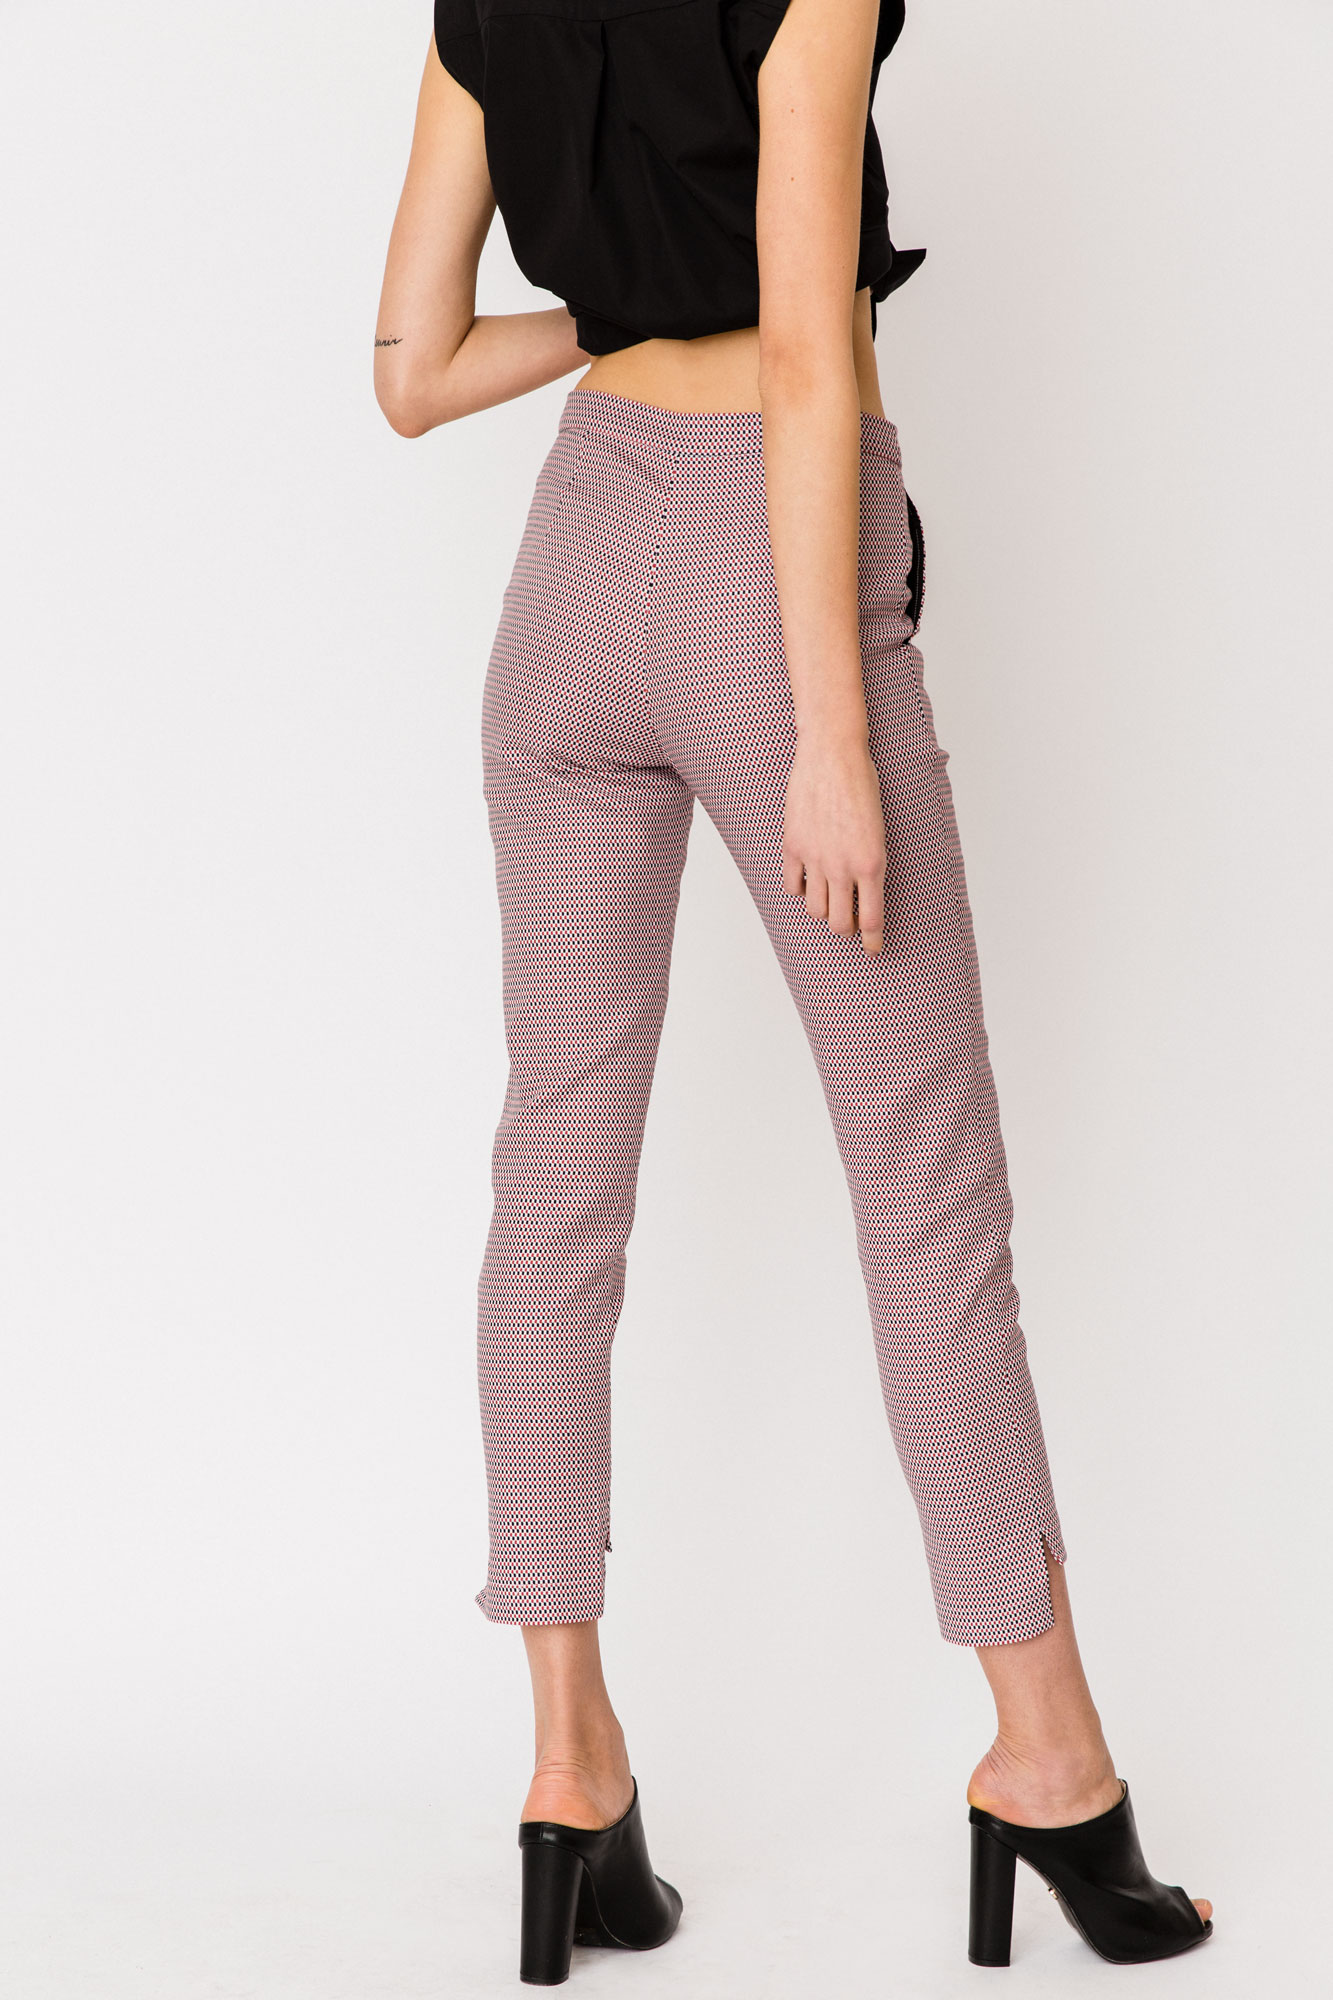 S18-03Pock_Trousers3